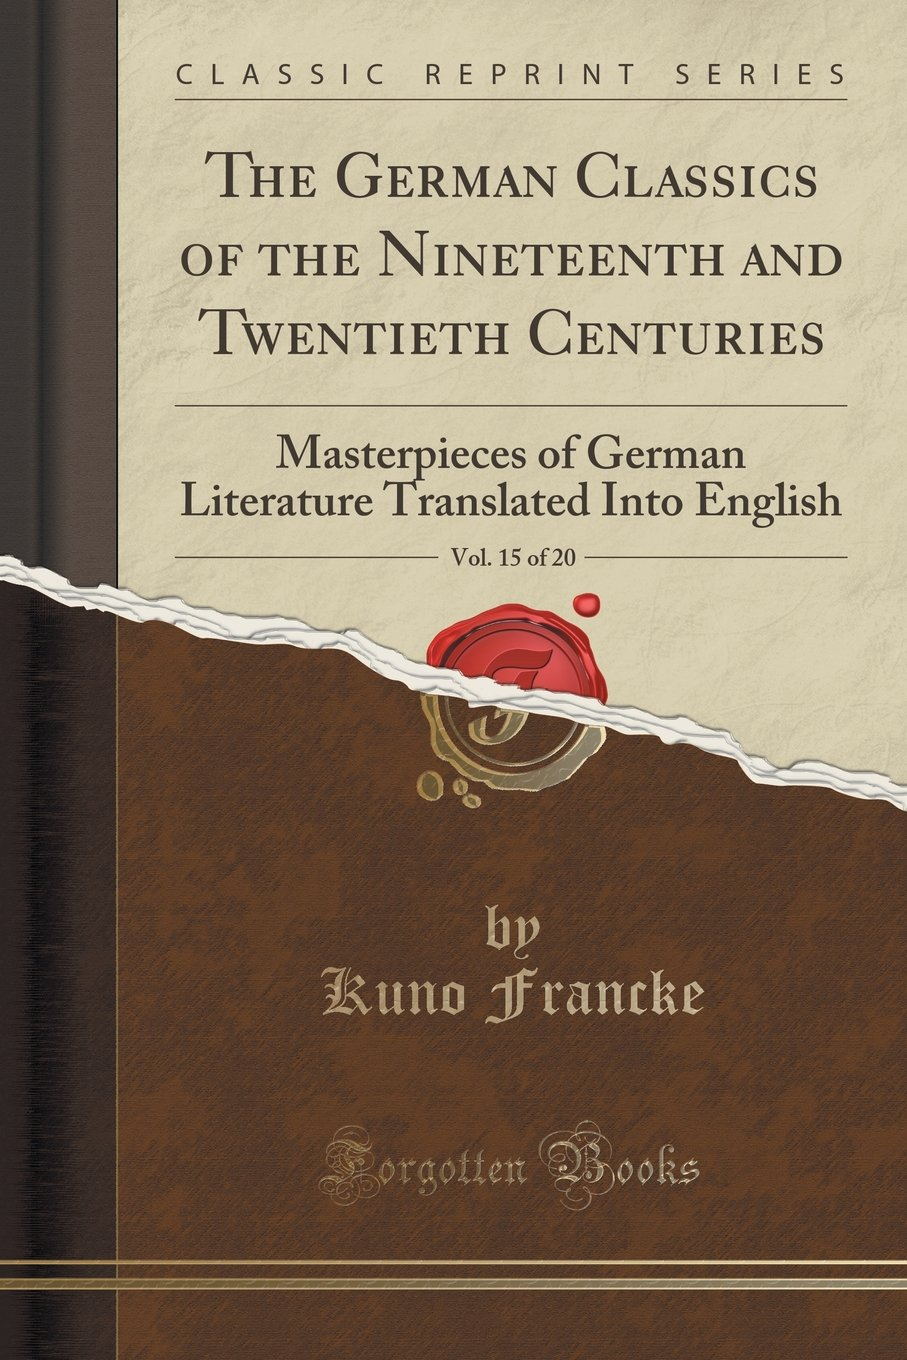 The German Classics of the Nineteenth and Twentieth Centuries, Vol. 15 of 20: Masterpieces of German Literature Translated Into English (Classic Reprint) ebook